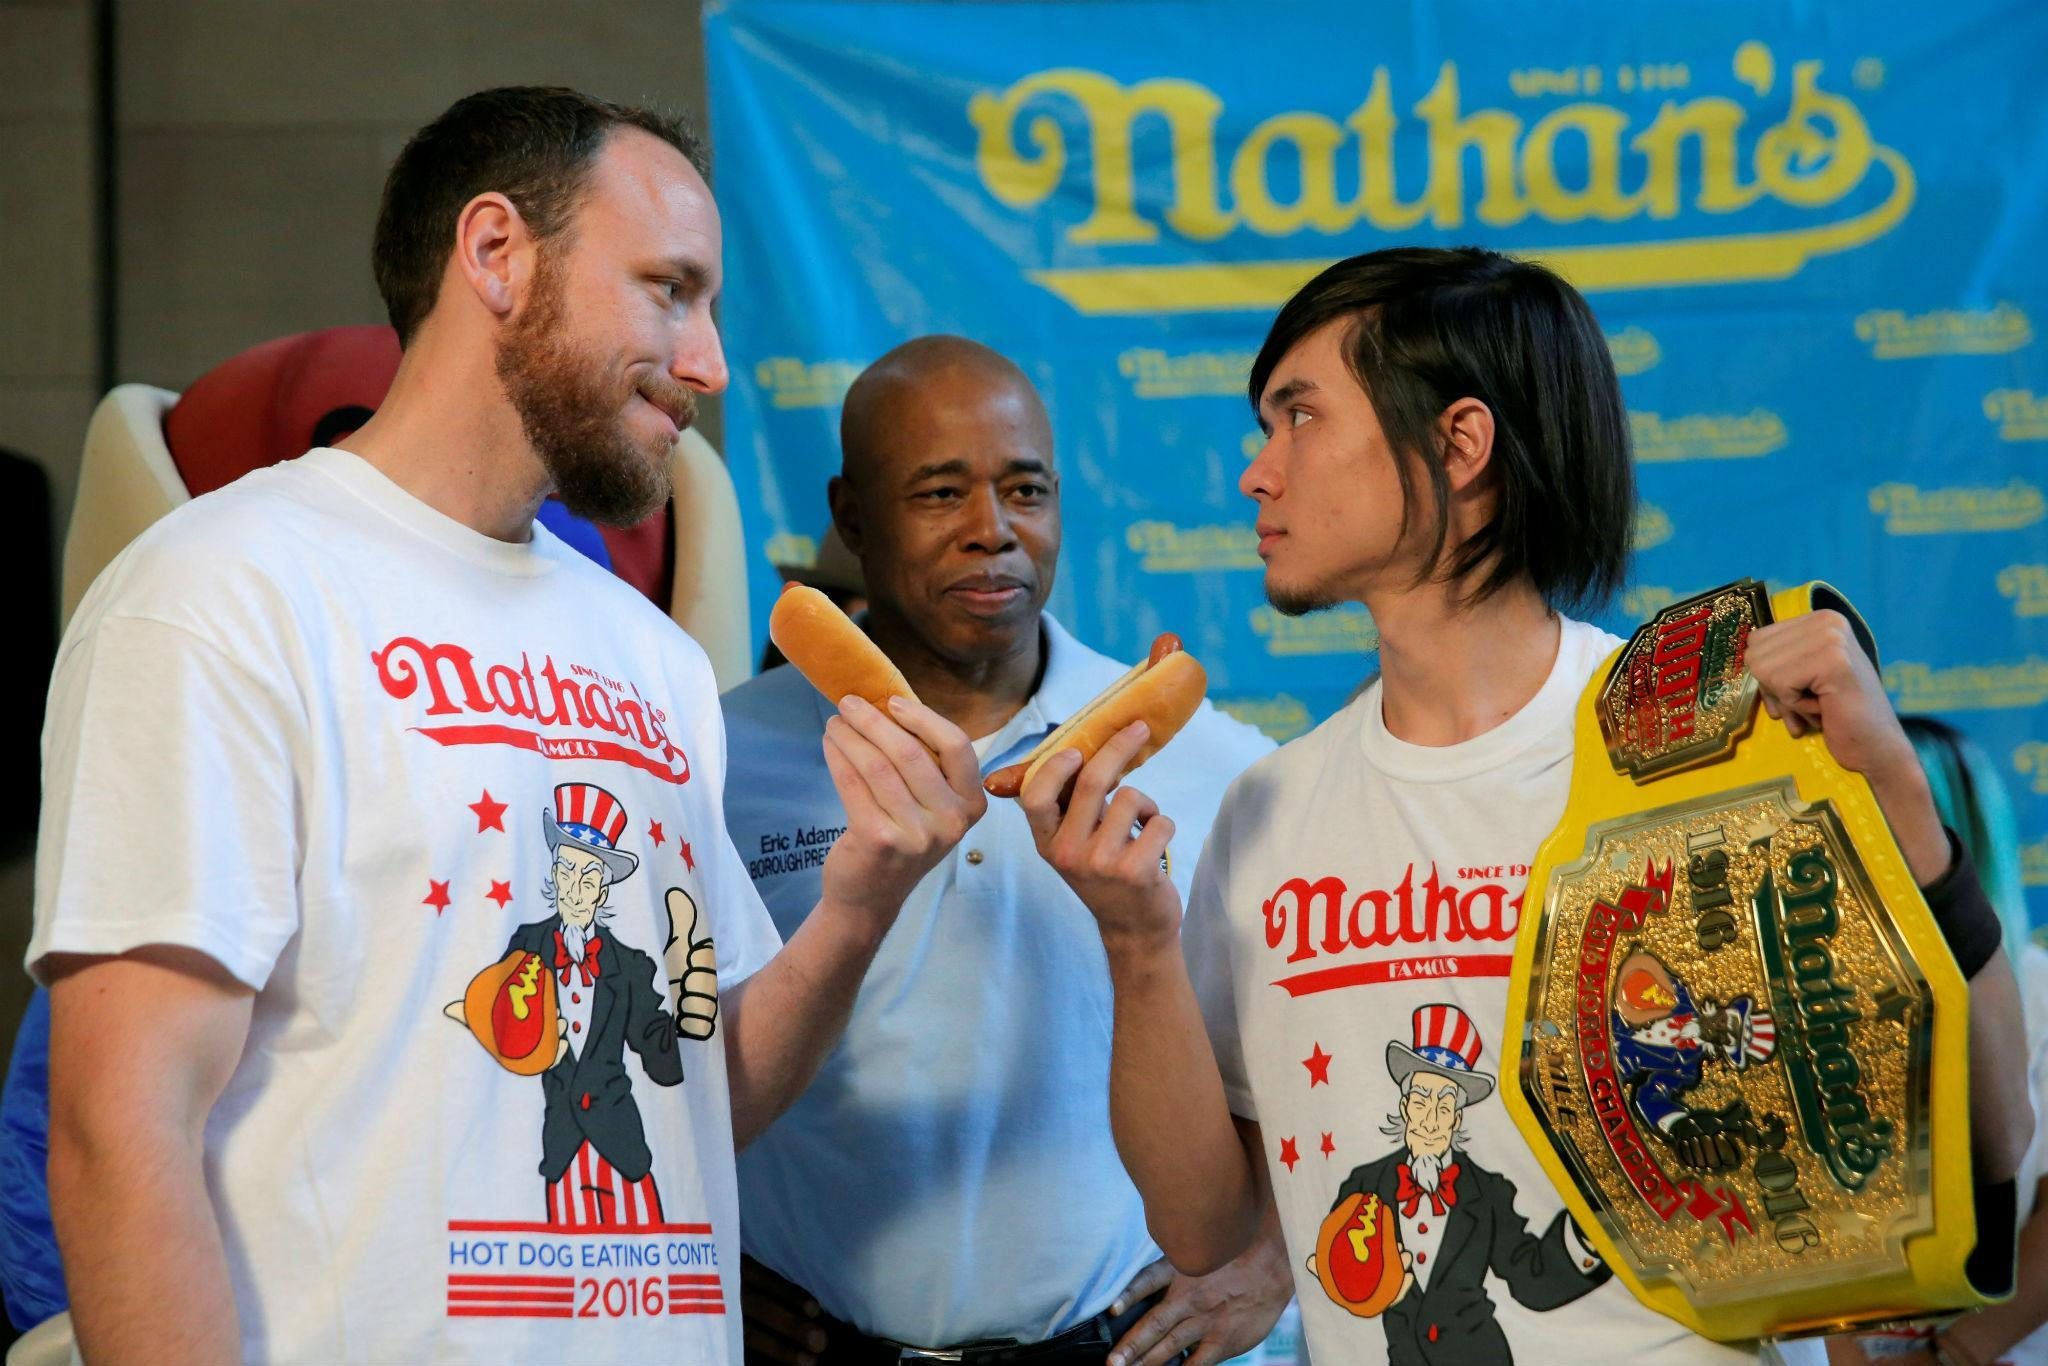 Nathan's hot dog eating contest celebrates a legendary anniversary